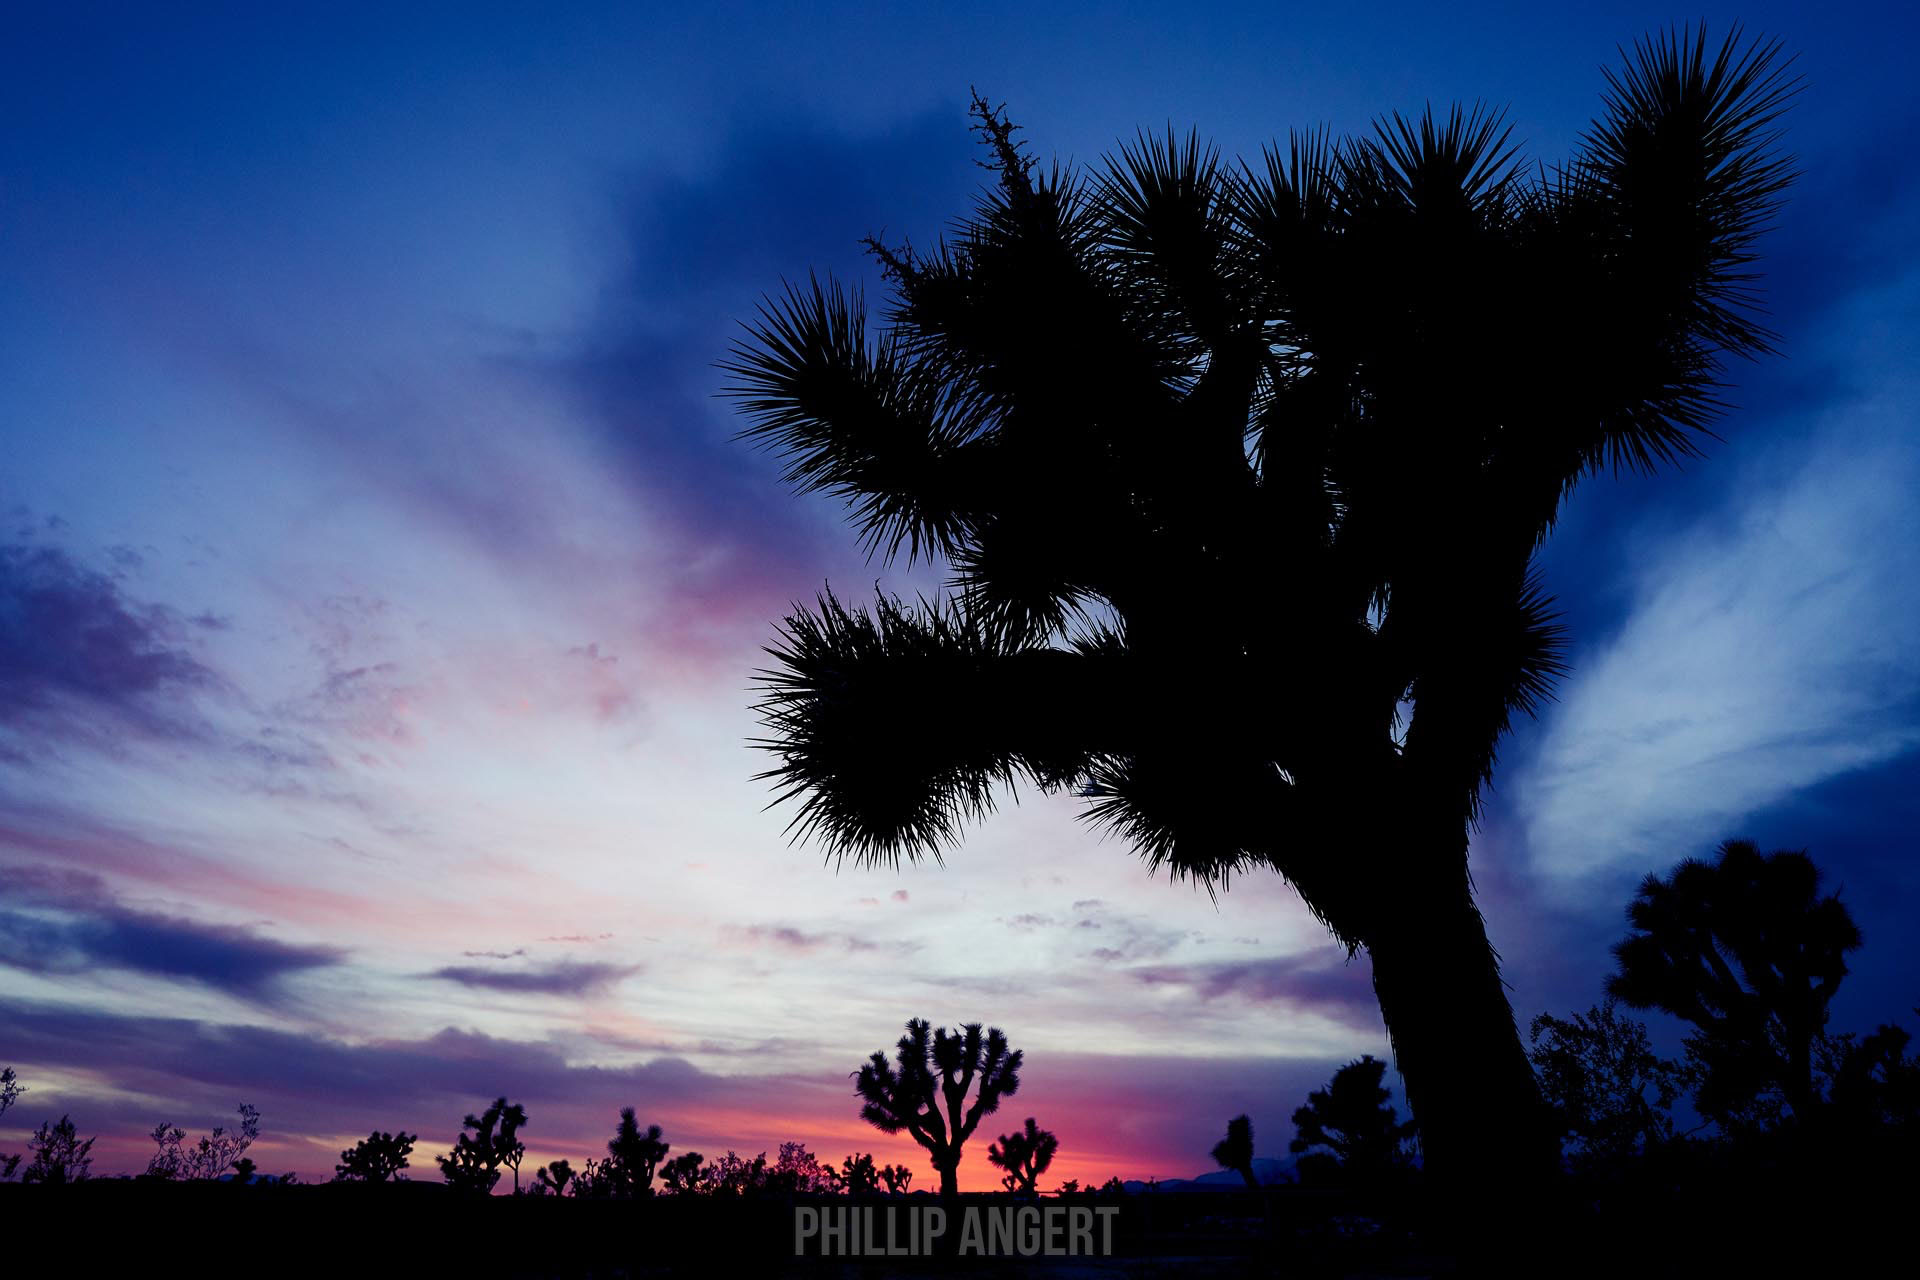 JoshuaTree20180116PhillipAngert - 4-watermarked.jpg